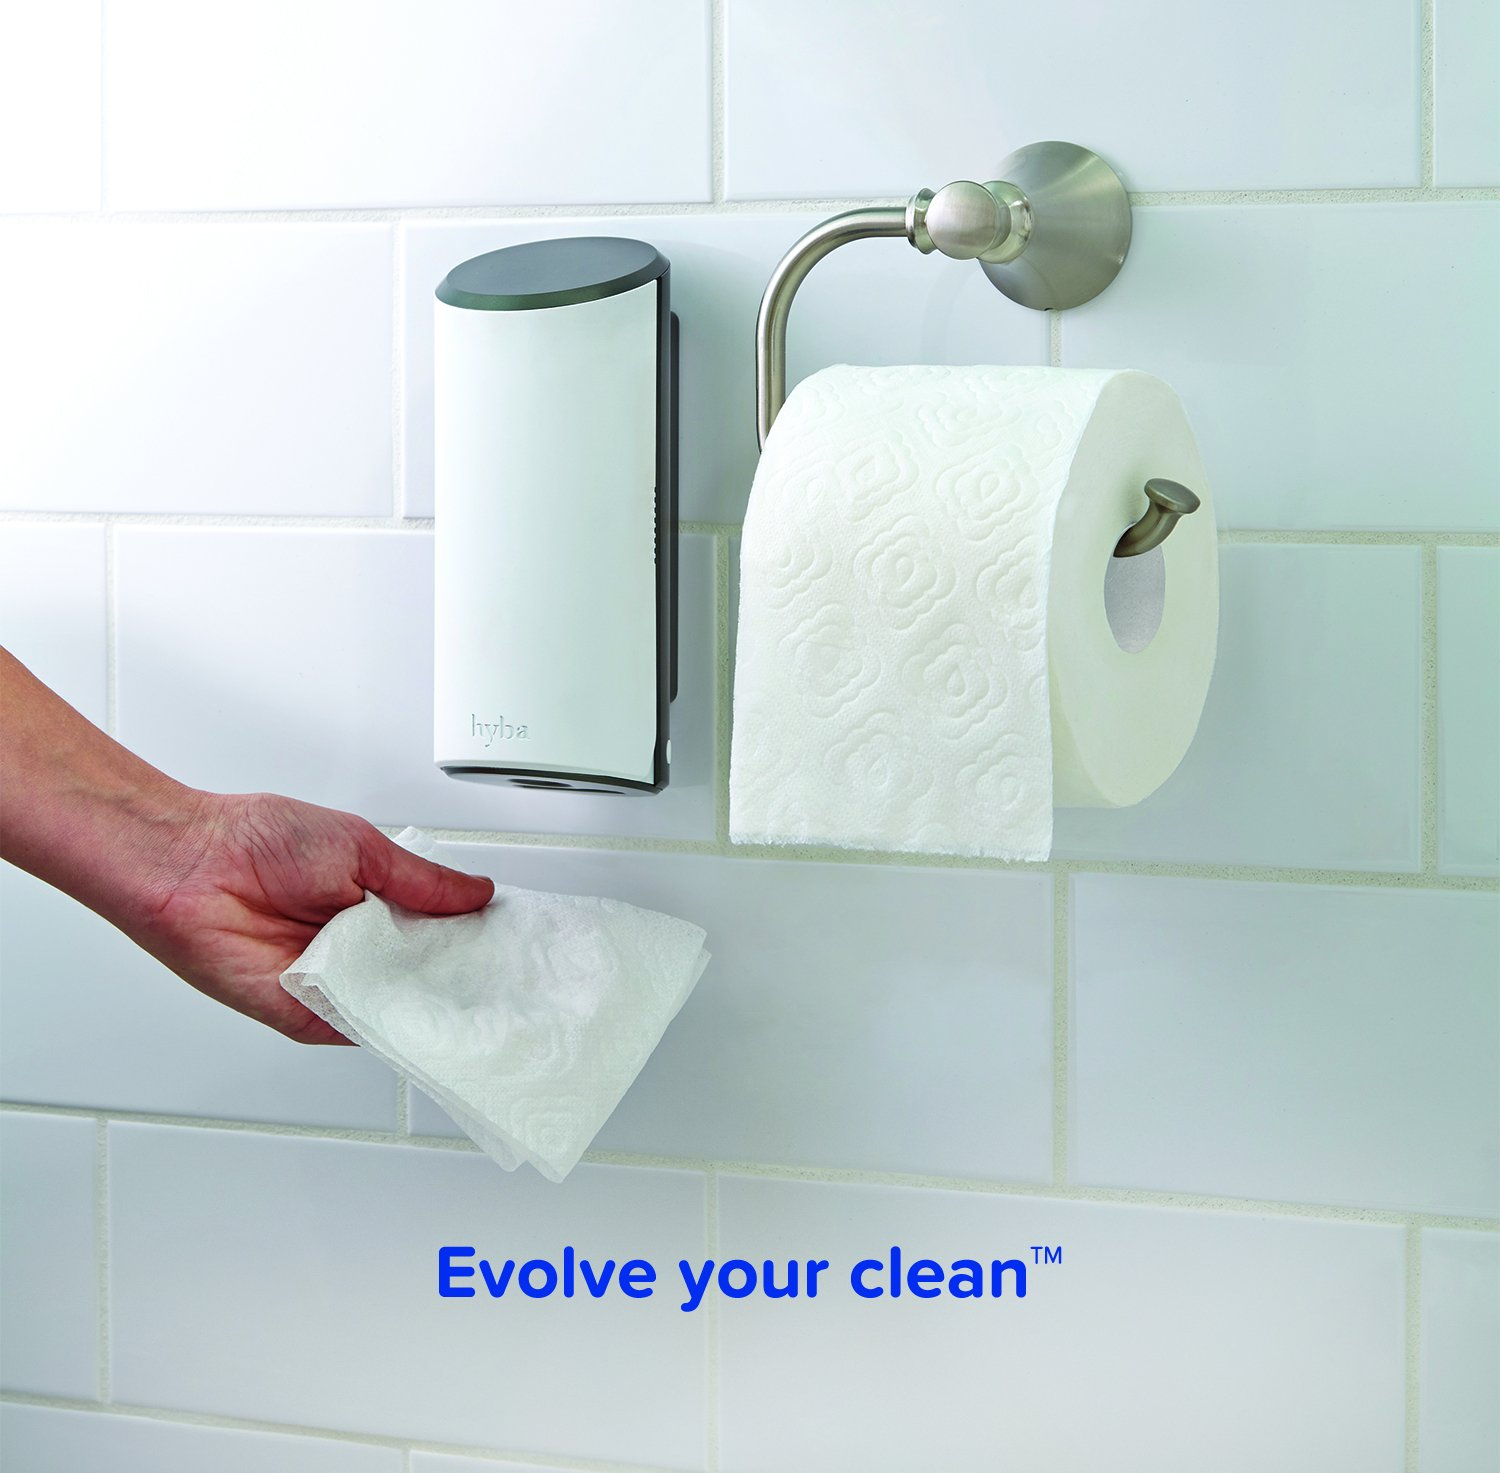 Amazon Hyba Personal Cleansing System Spritz Safe Toilet Paper